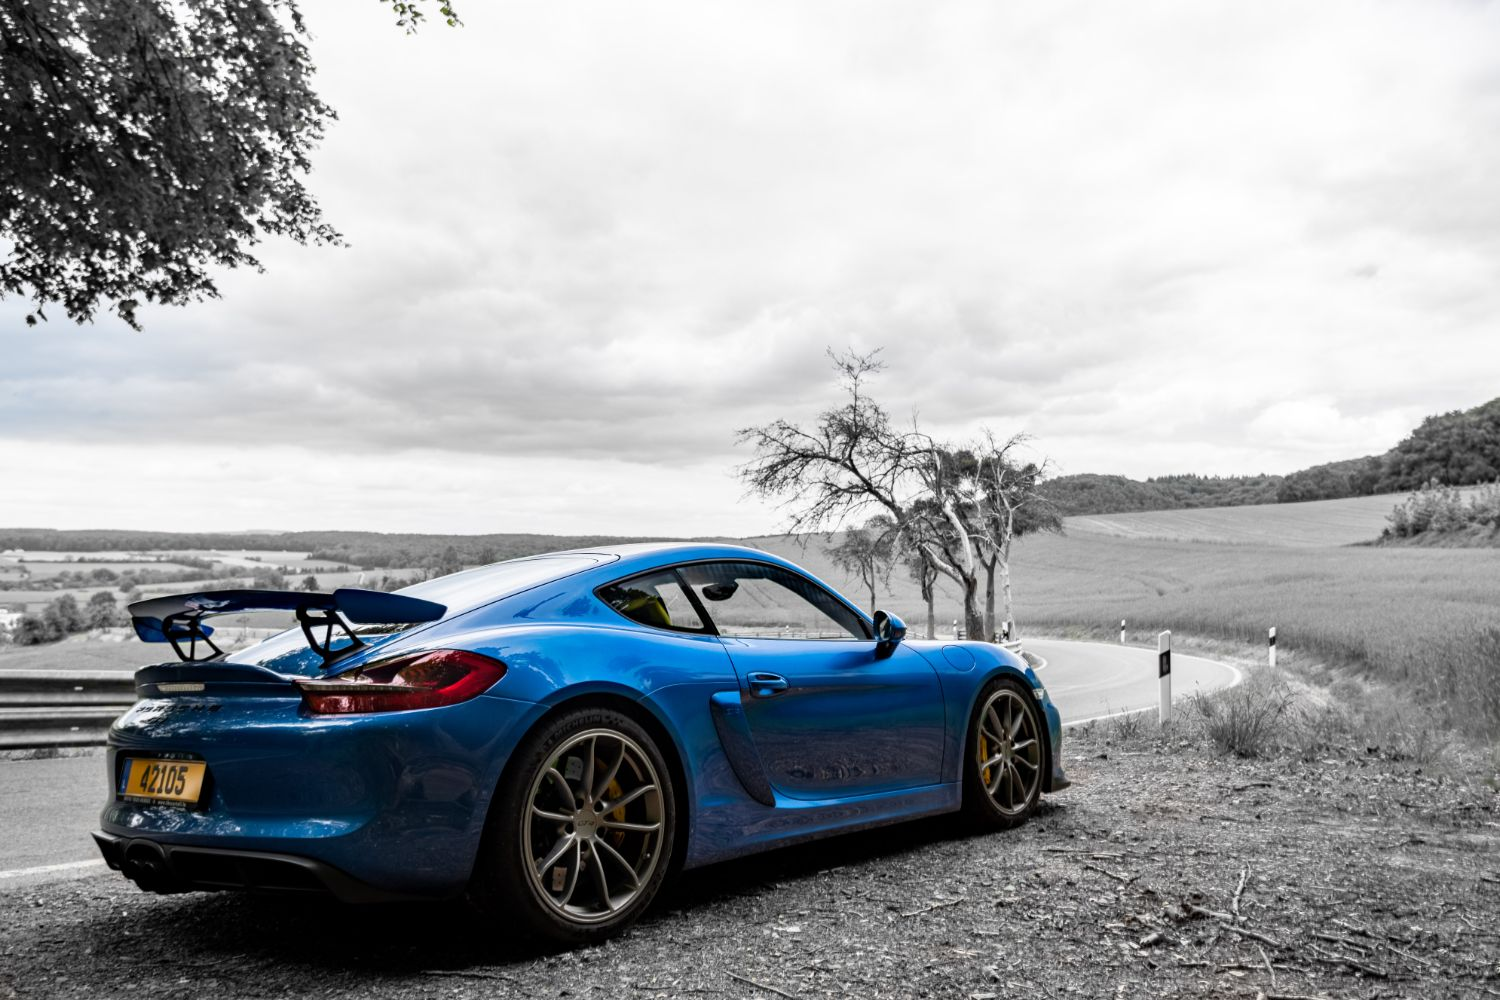 Porsche Cayman GT4 Clubsport - Hannah - photo by Philippe Hoett